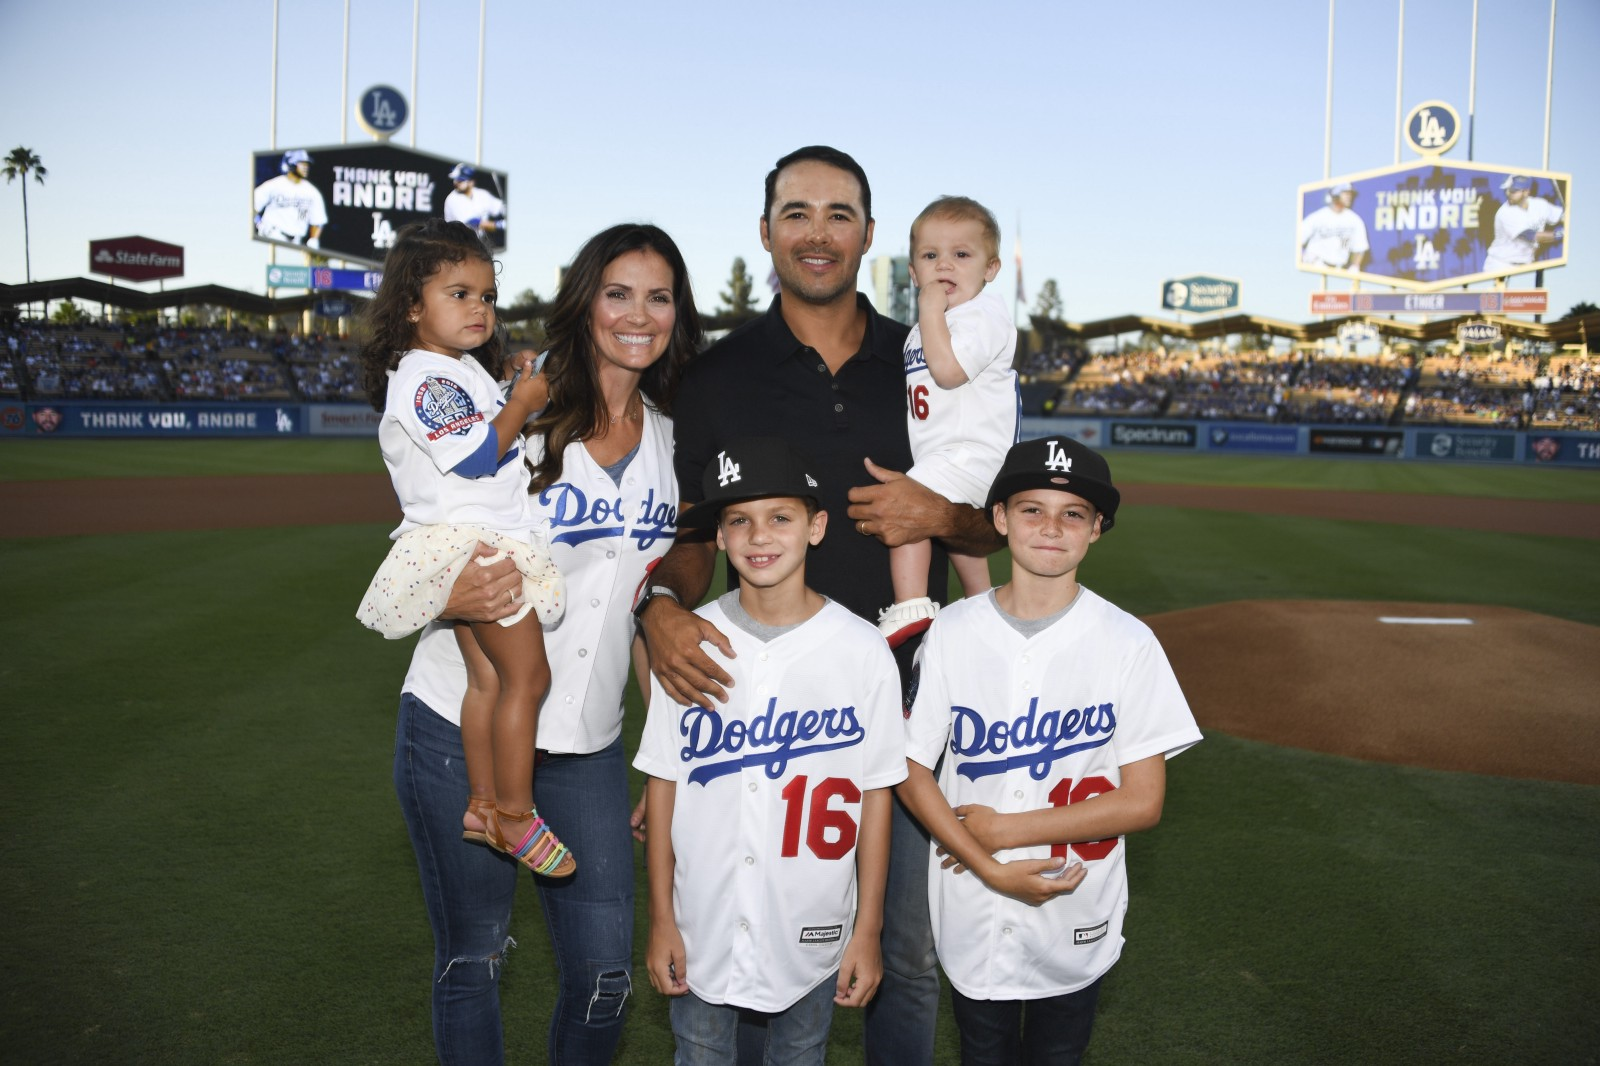 After 12 Years In LA Dodgers Honor Andre Ethier At